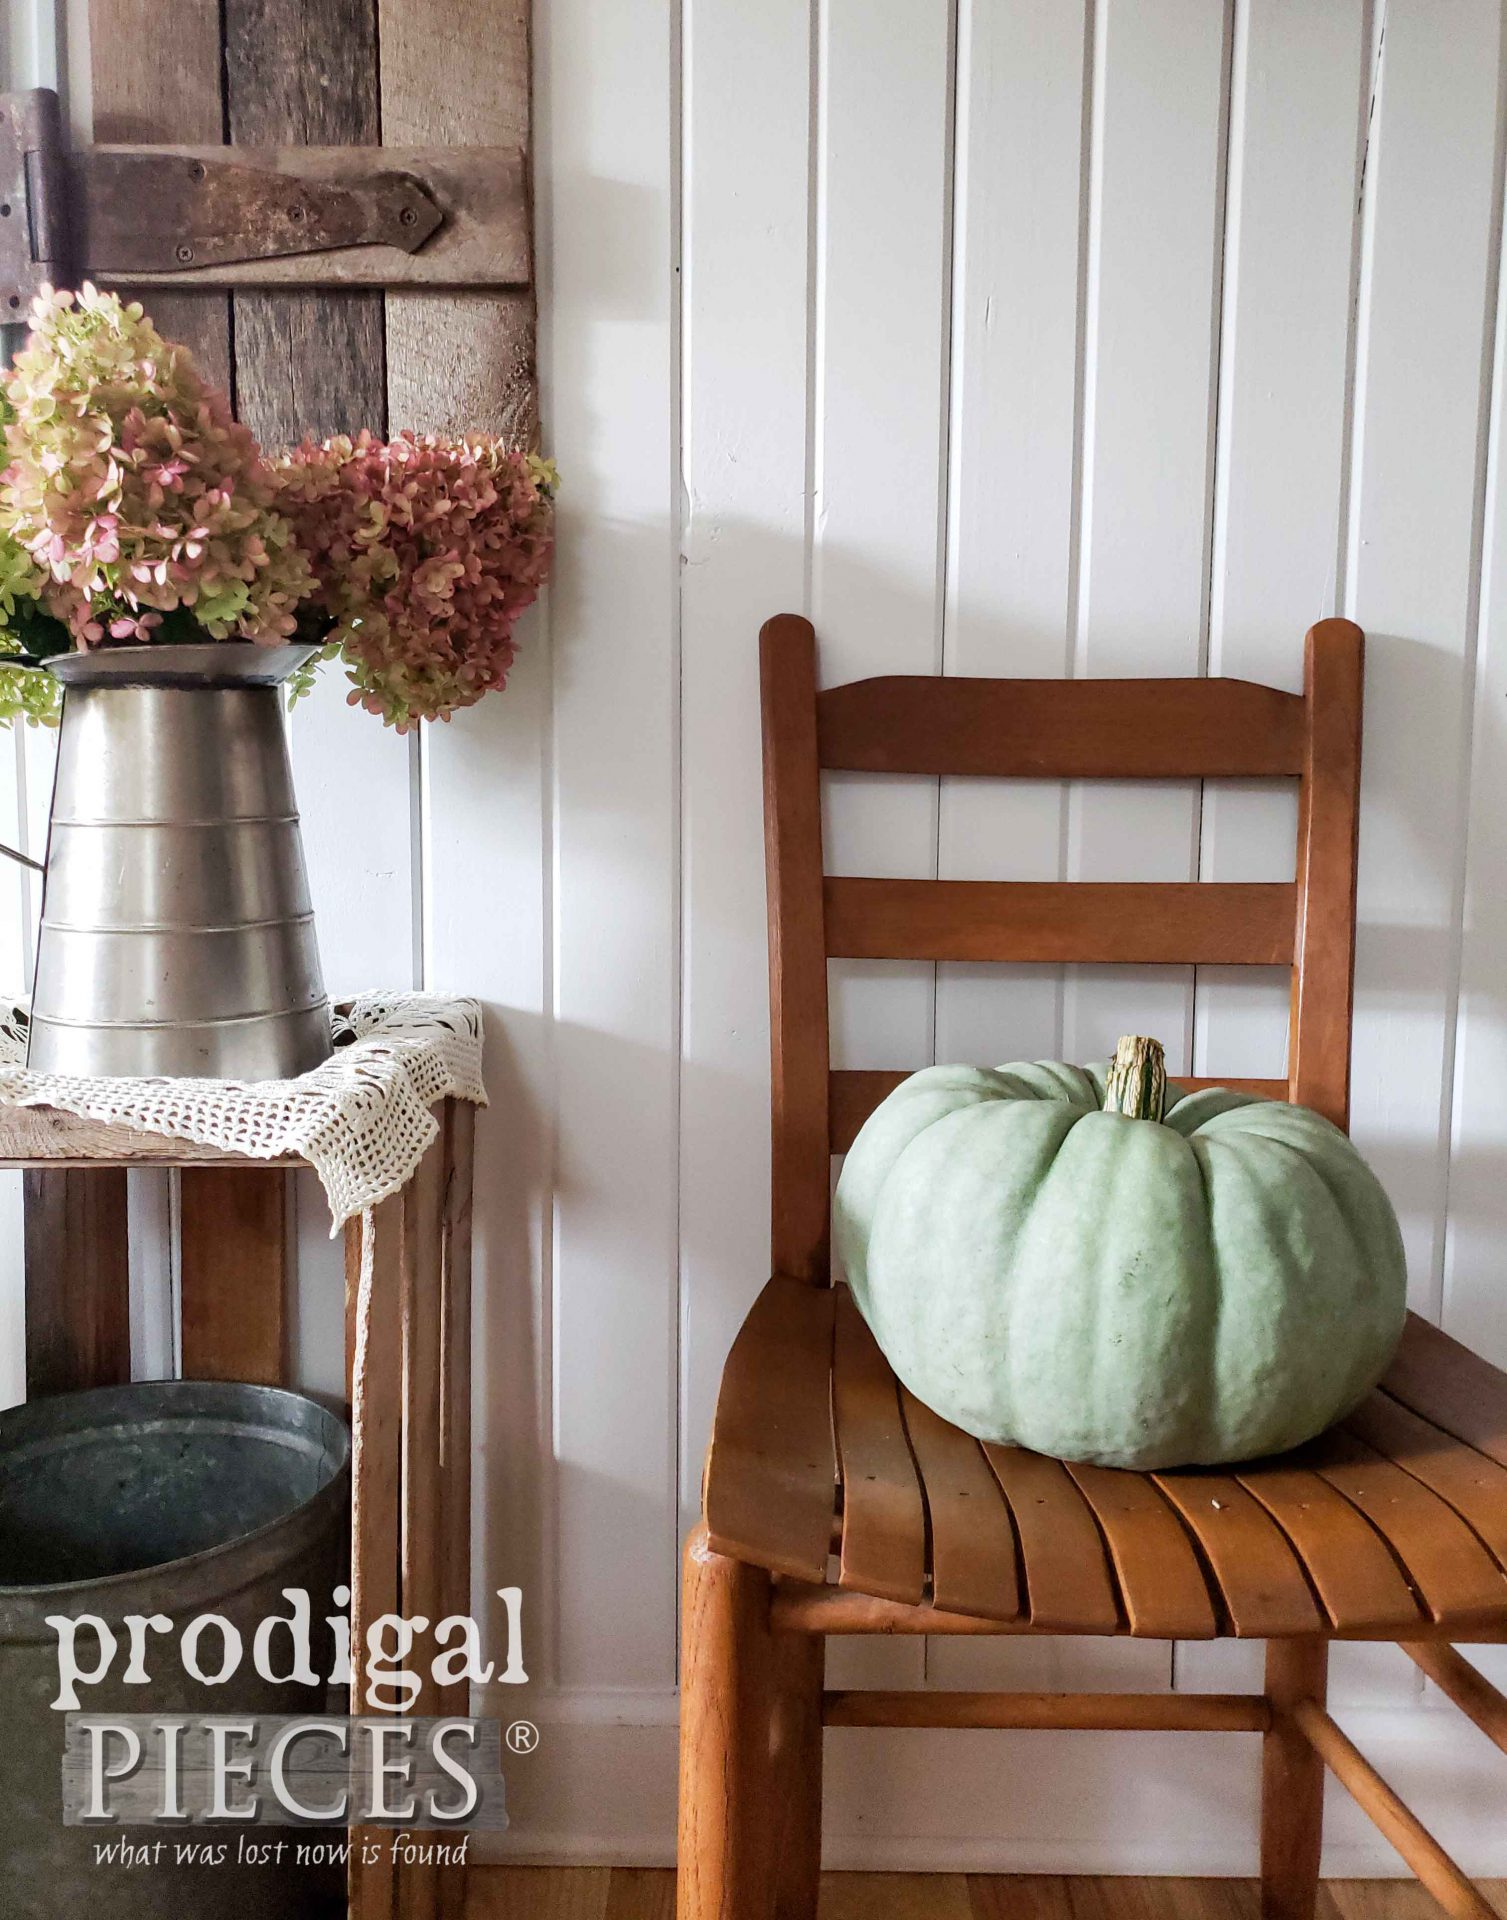 Blue Jarrahdale Pumpkin on Chair | Farmhouse Fall Vignette Decor by Larissa of Prodigal Pieces | prodigalpieces.com #prodigalpieces #farmhouse #pumpkin #home #homedecor #fall